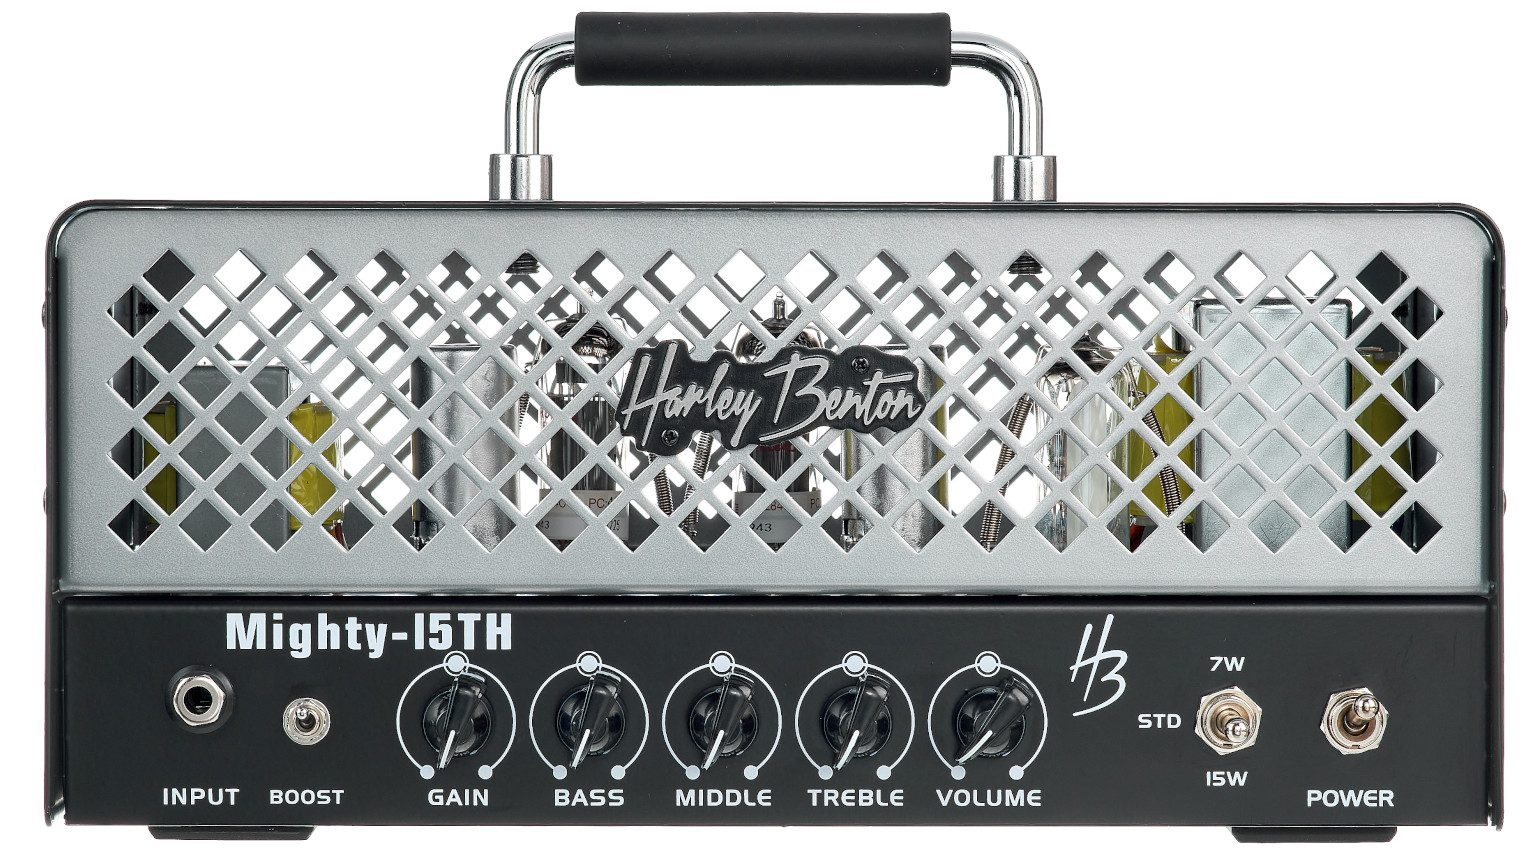 Harley Benton Mighty-15TH Amp Front